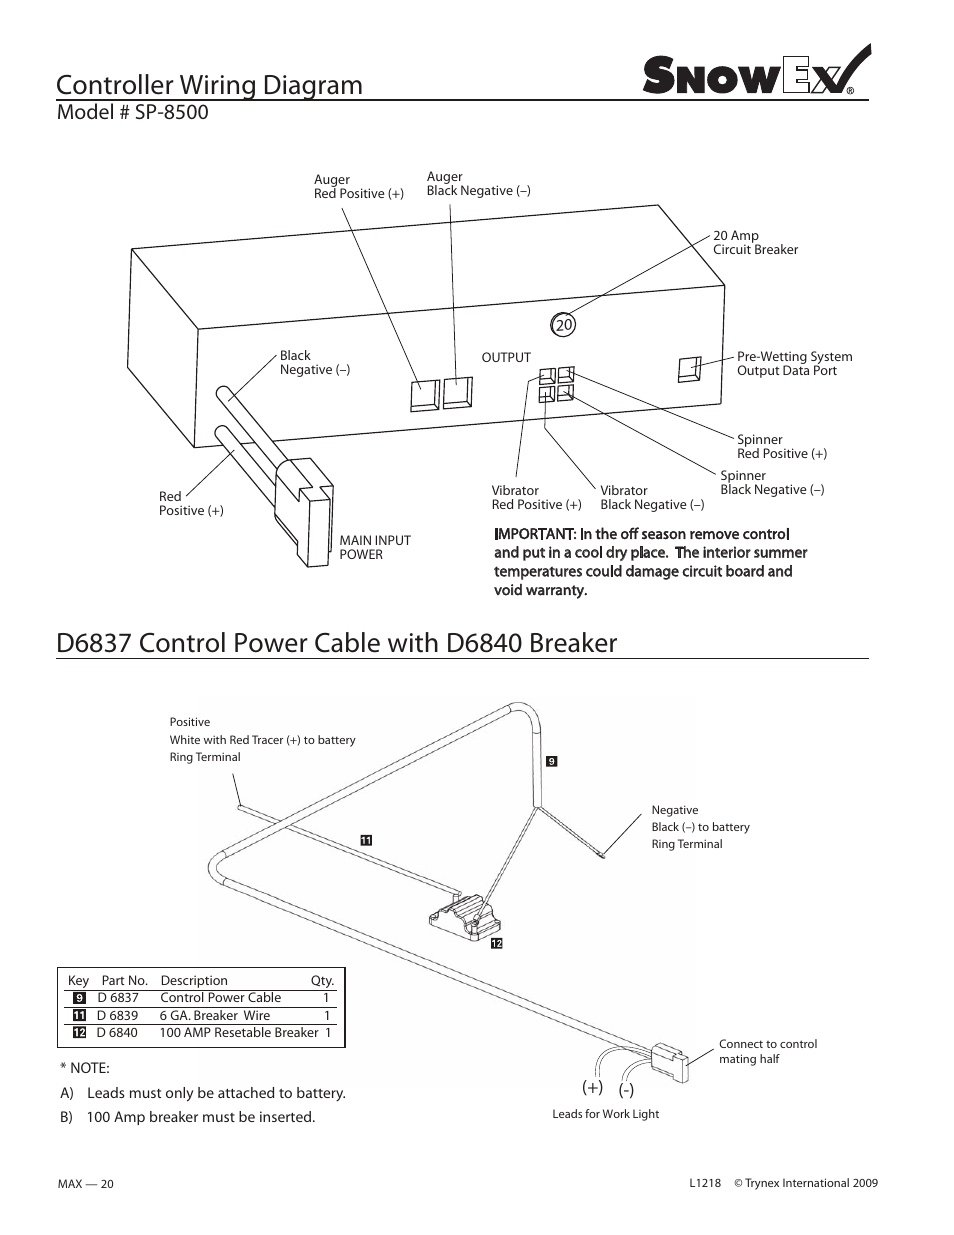 hight resolution of controller wiring diagram model sp 8500 snowex sp 8500 user manual page 18 34